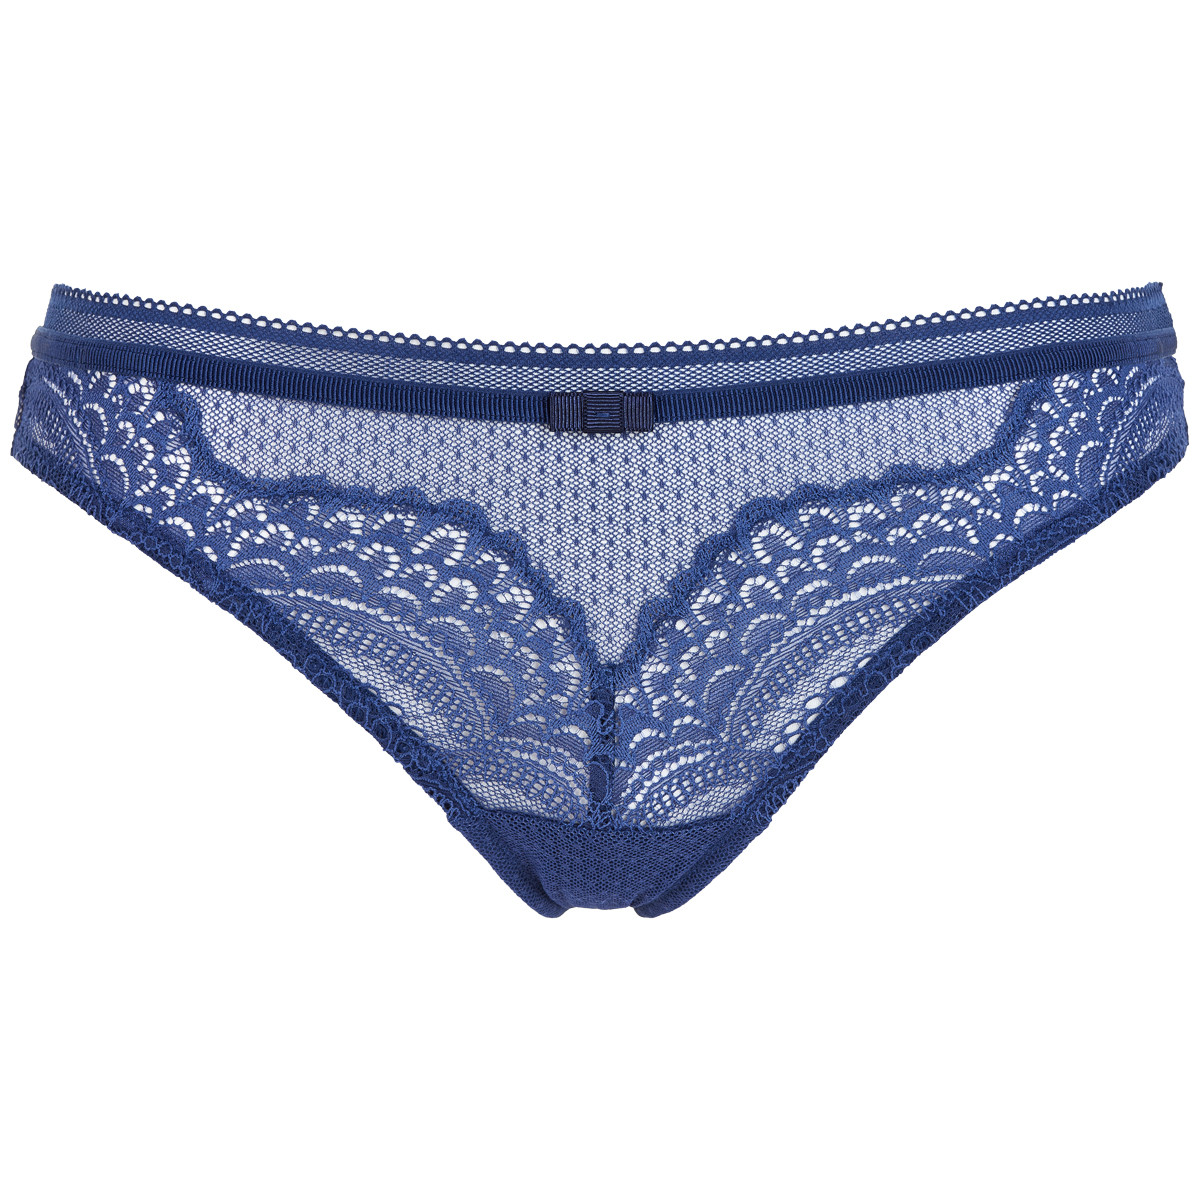 TRIUMPH BEAUTY-FULL DARLING STRING 10156818 6722